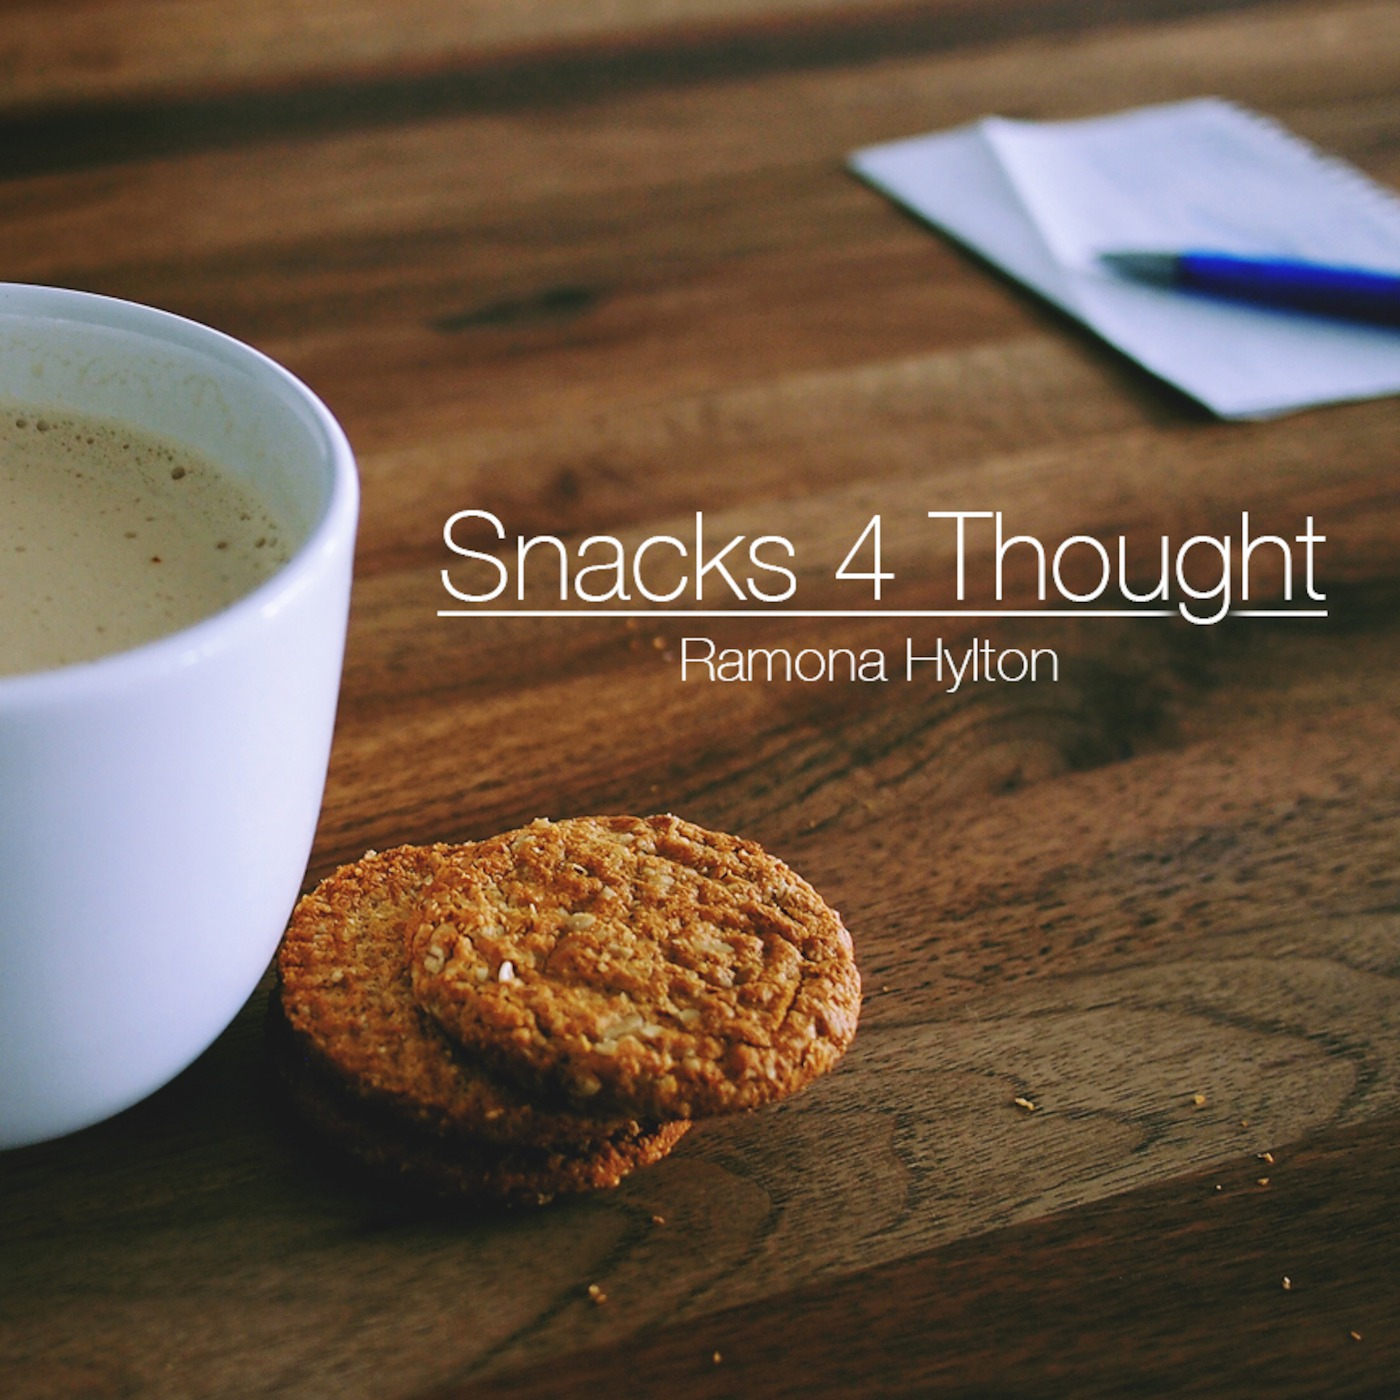 Snacks 4 Thought